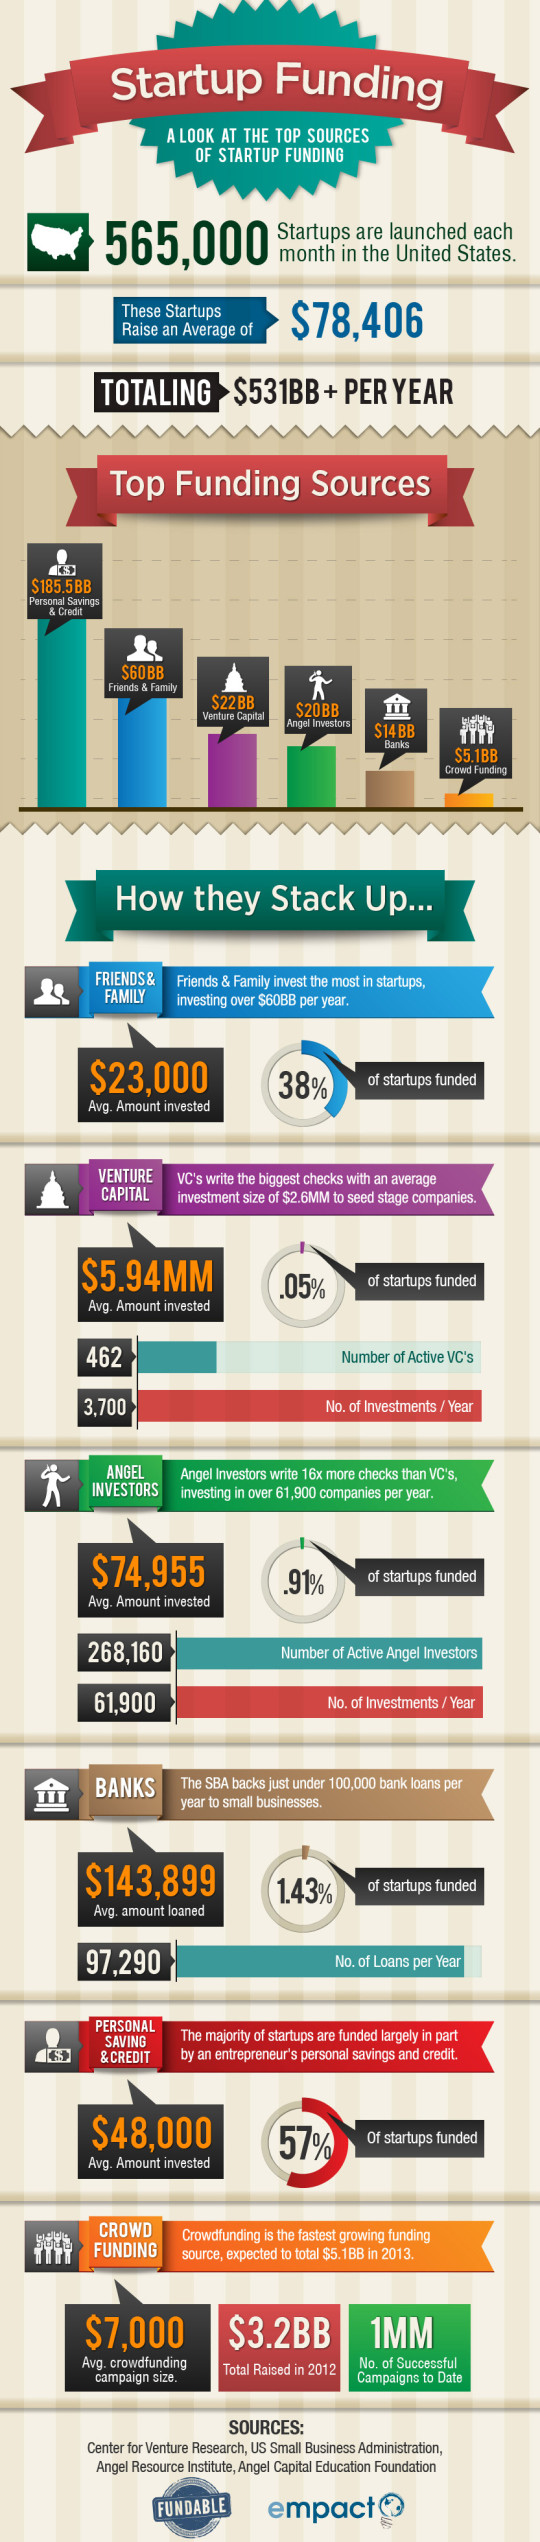 where-startup-funding-really-comes-from-infographic